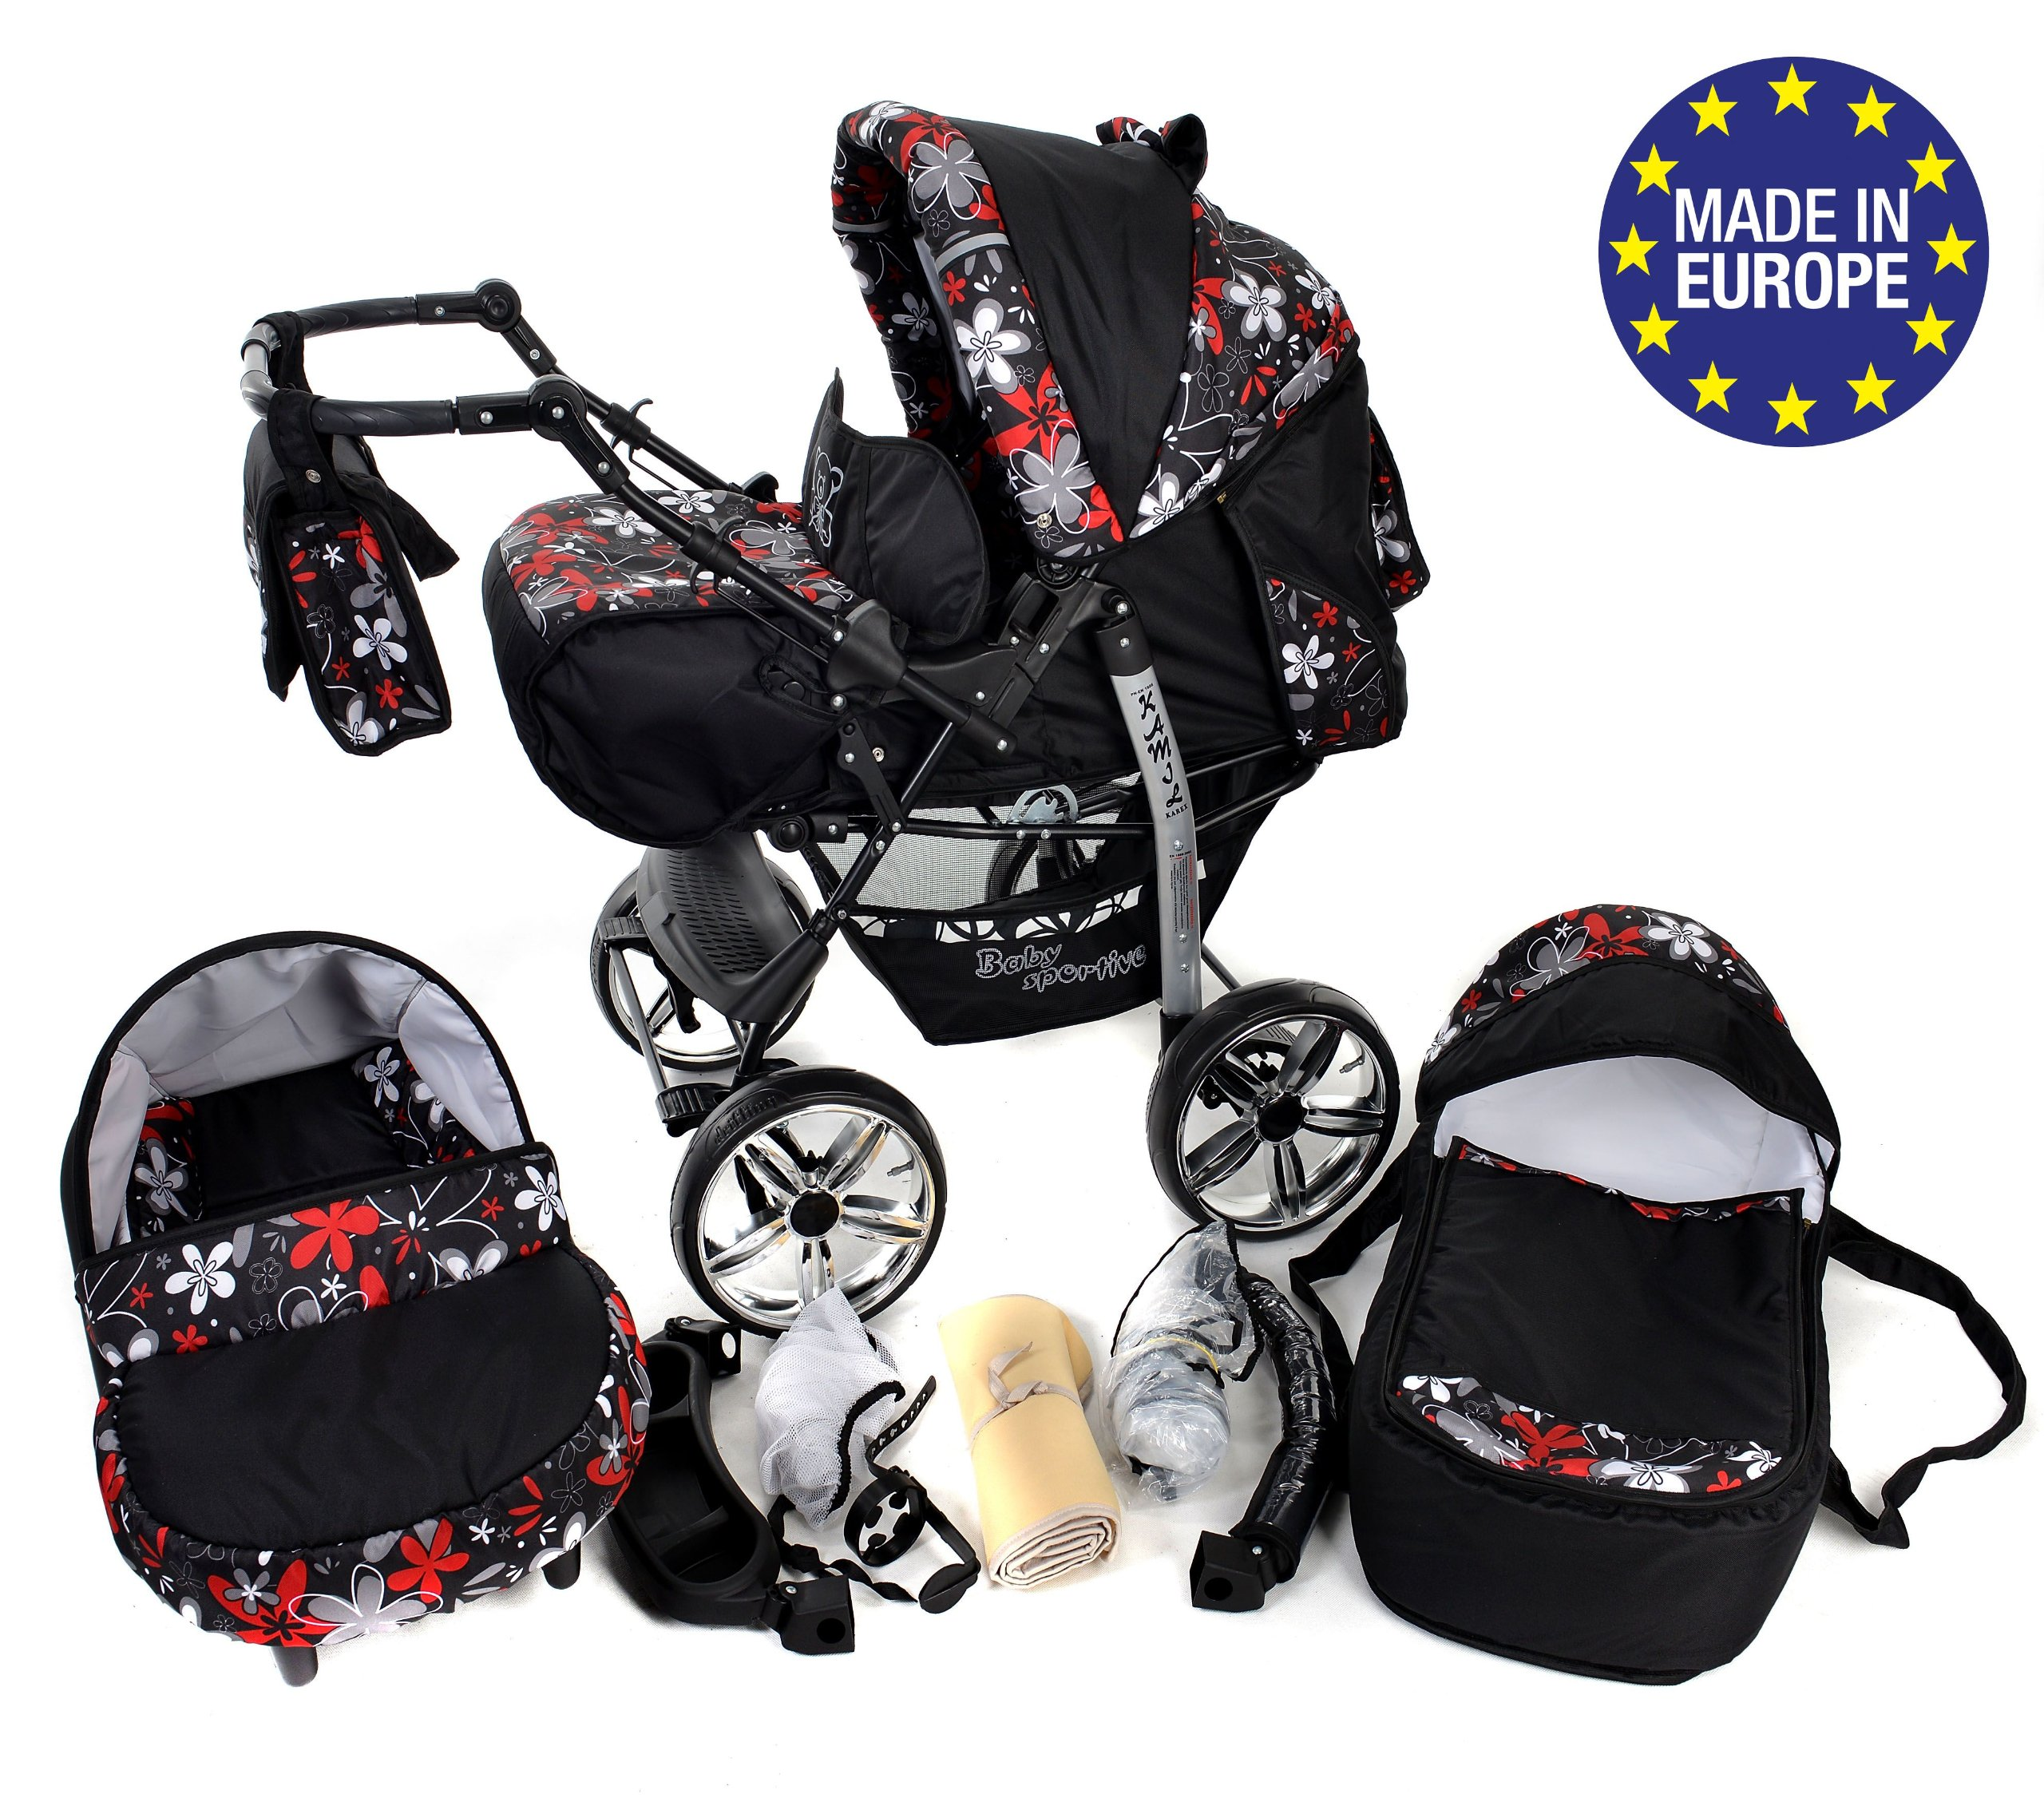 Sportive X2, 3-in-1 Travel System incl. Baby Pram with Swivel Wheels, Car Seat, Pushchair & Accessories (3-in-1 Travel System, Black & Small Flowers) Baby Sportive 3 in 1 Travel System All in One Set - Pram, Car Carrier Seat and Sport Buggy + Accessories: carrier bag, rain protection, mosquito net, changing mat, removable bottle holder and removable tray for your child's bits and pieces Suitable from birth, Easy Quick Folding System; Large storage basket; Turnable handle bar that allows to face or rear the drive direction; Quick release rear wheels for easy cleaning after muddy walks Front lockable 360o swivel wheels for manoeuvrability , Small sized when folded, fits into many small car trunks, Carry-cot with a removable hood, Reflective elements for better visibility 1